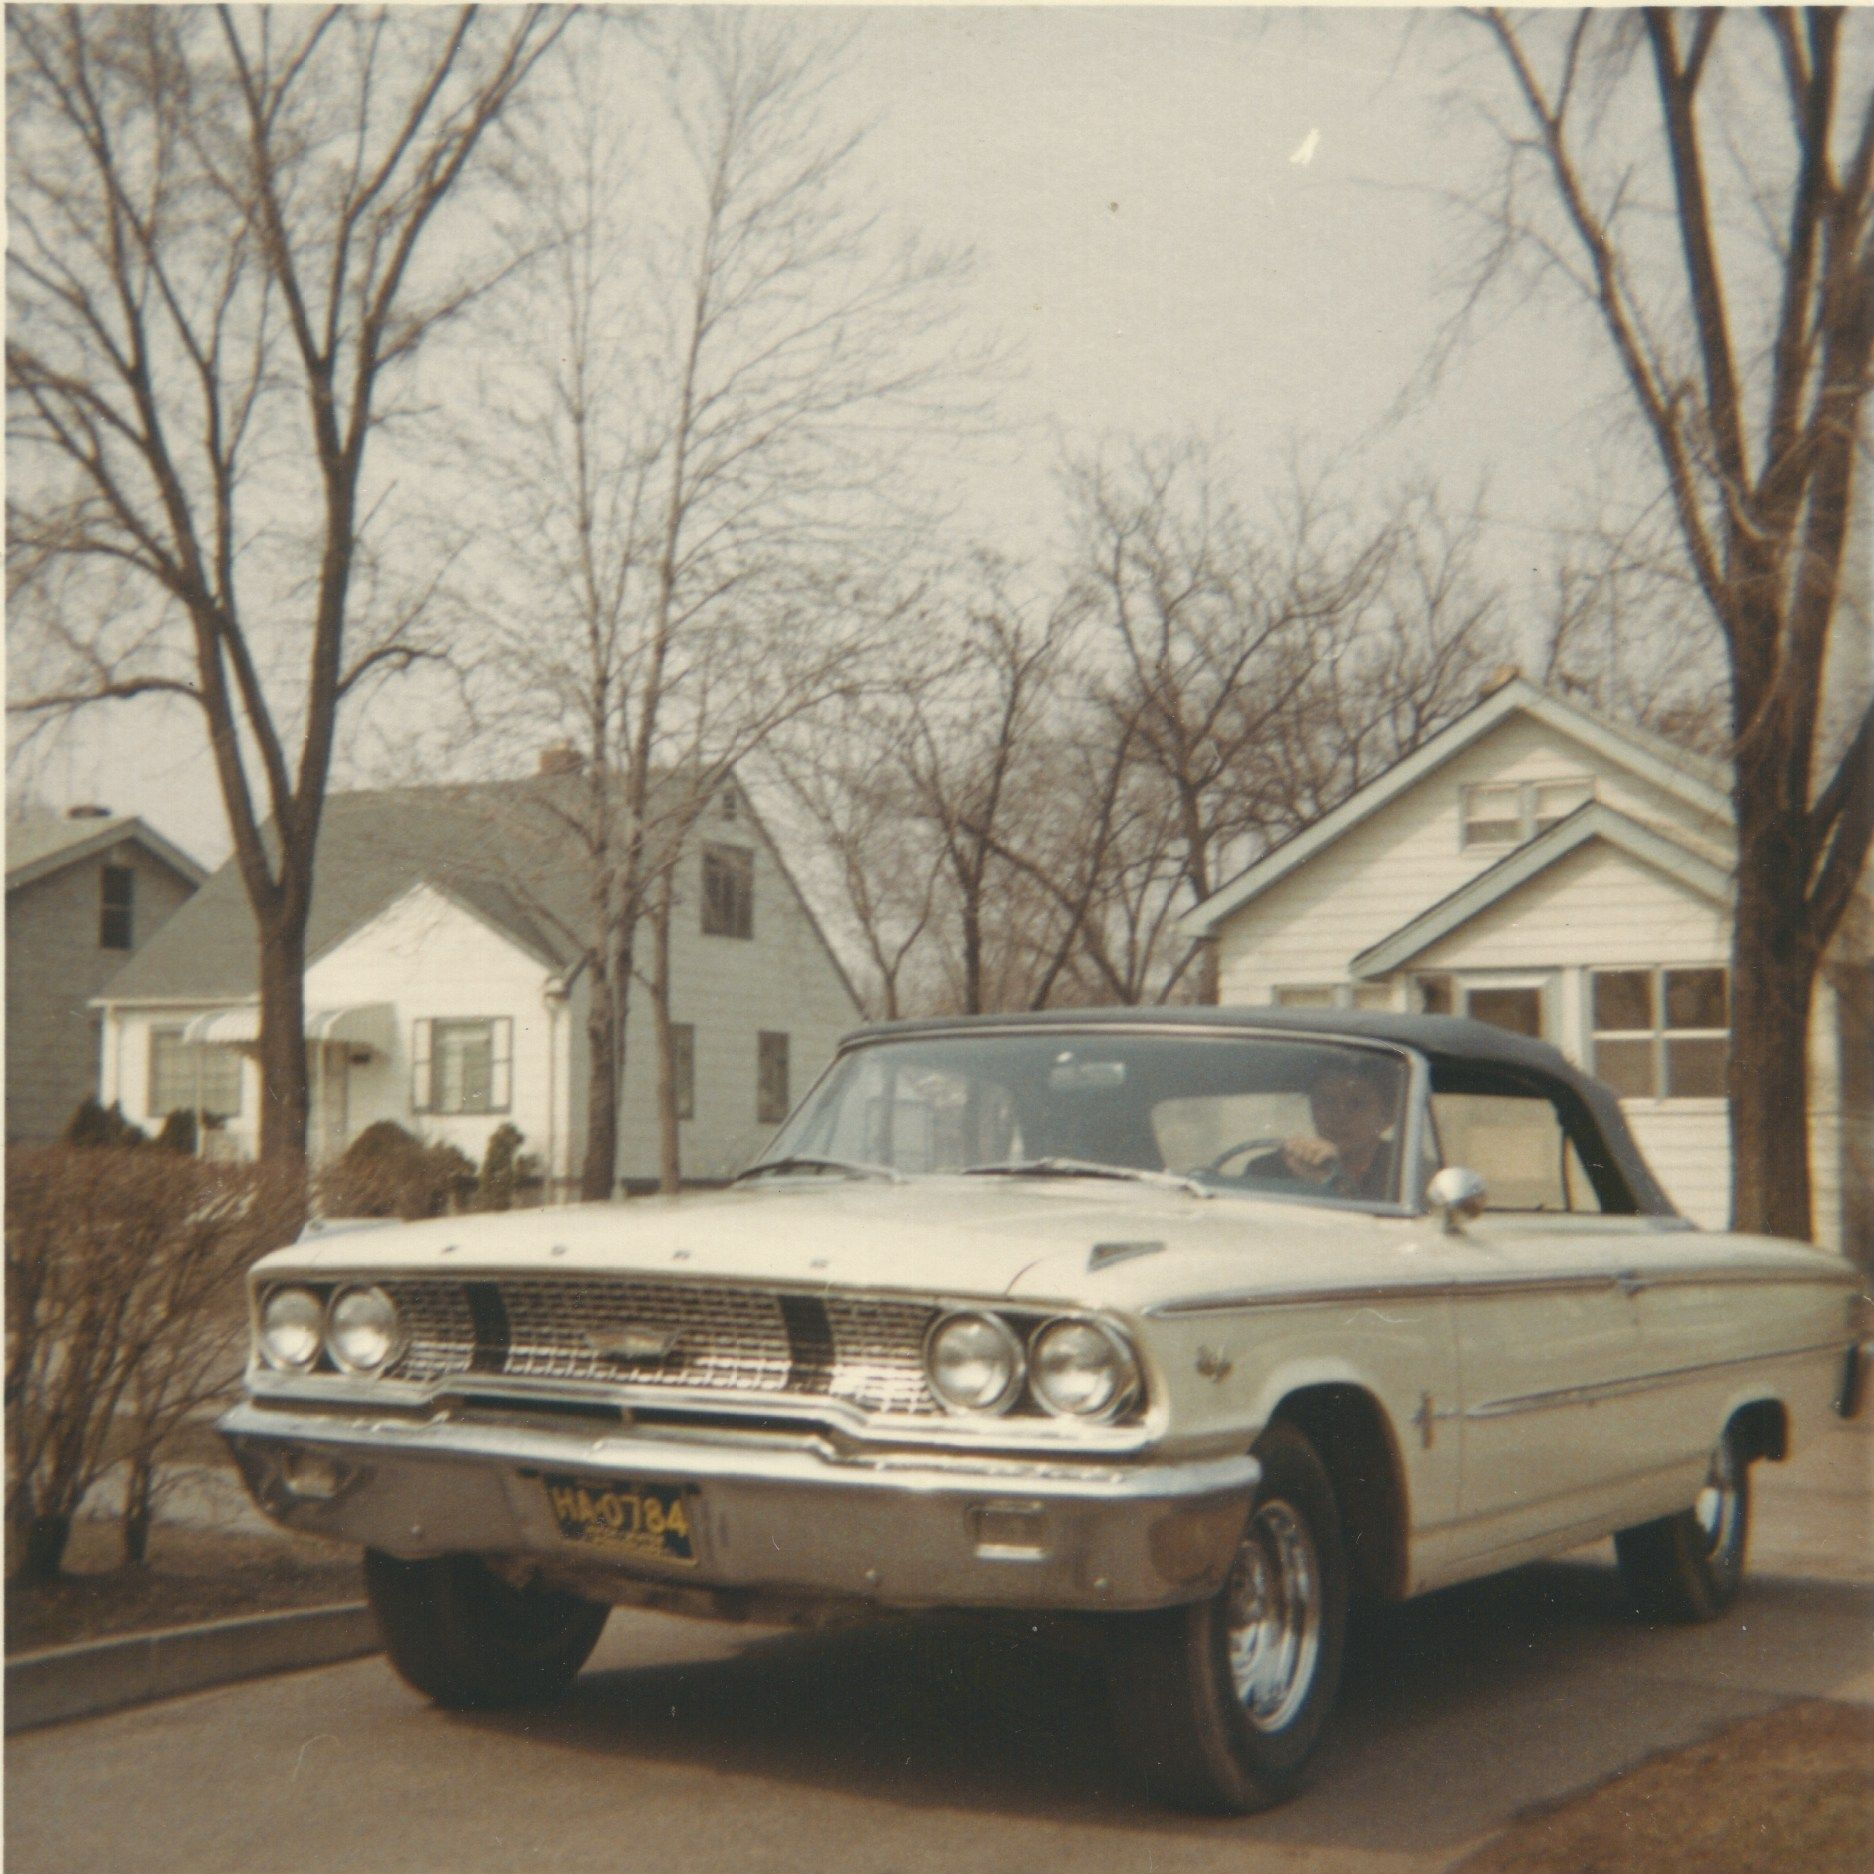 My 1963 Ford Galaxie 500 Convertible When I First Bought It Painted Original White With Blue Vinyl